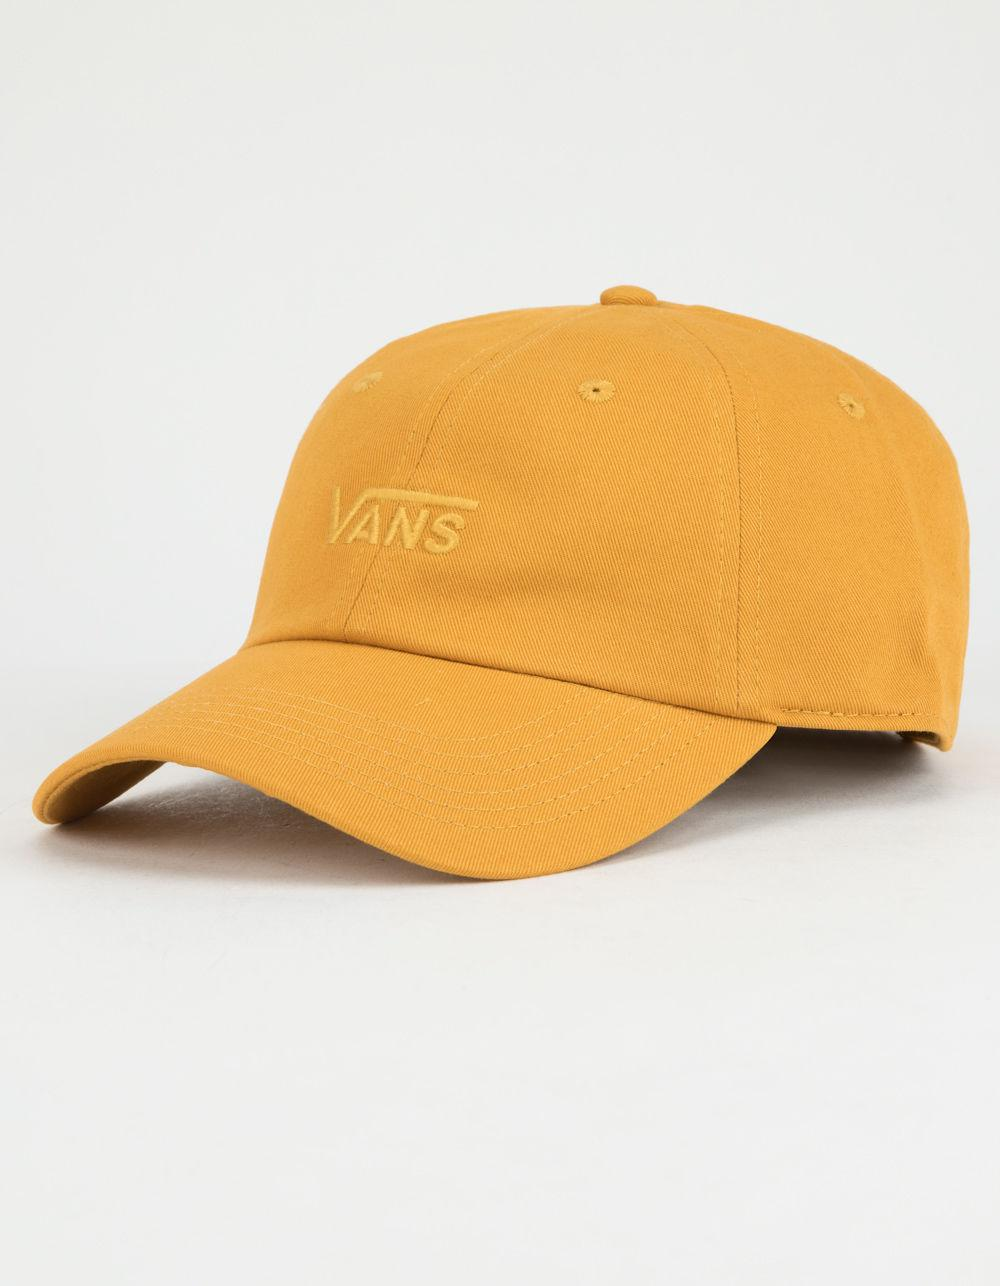 Lyst - Vans Court Side Womens Dad Hat in Yellow for Men 41ce3962ca4